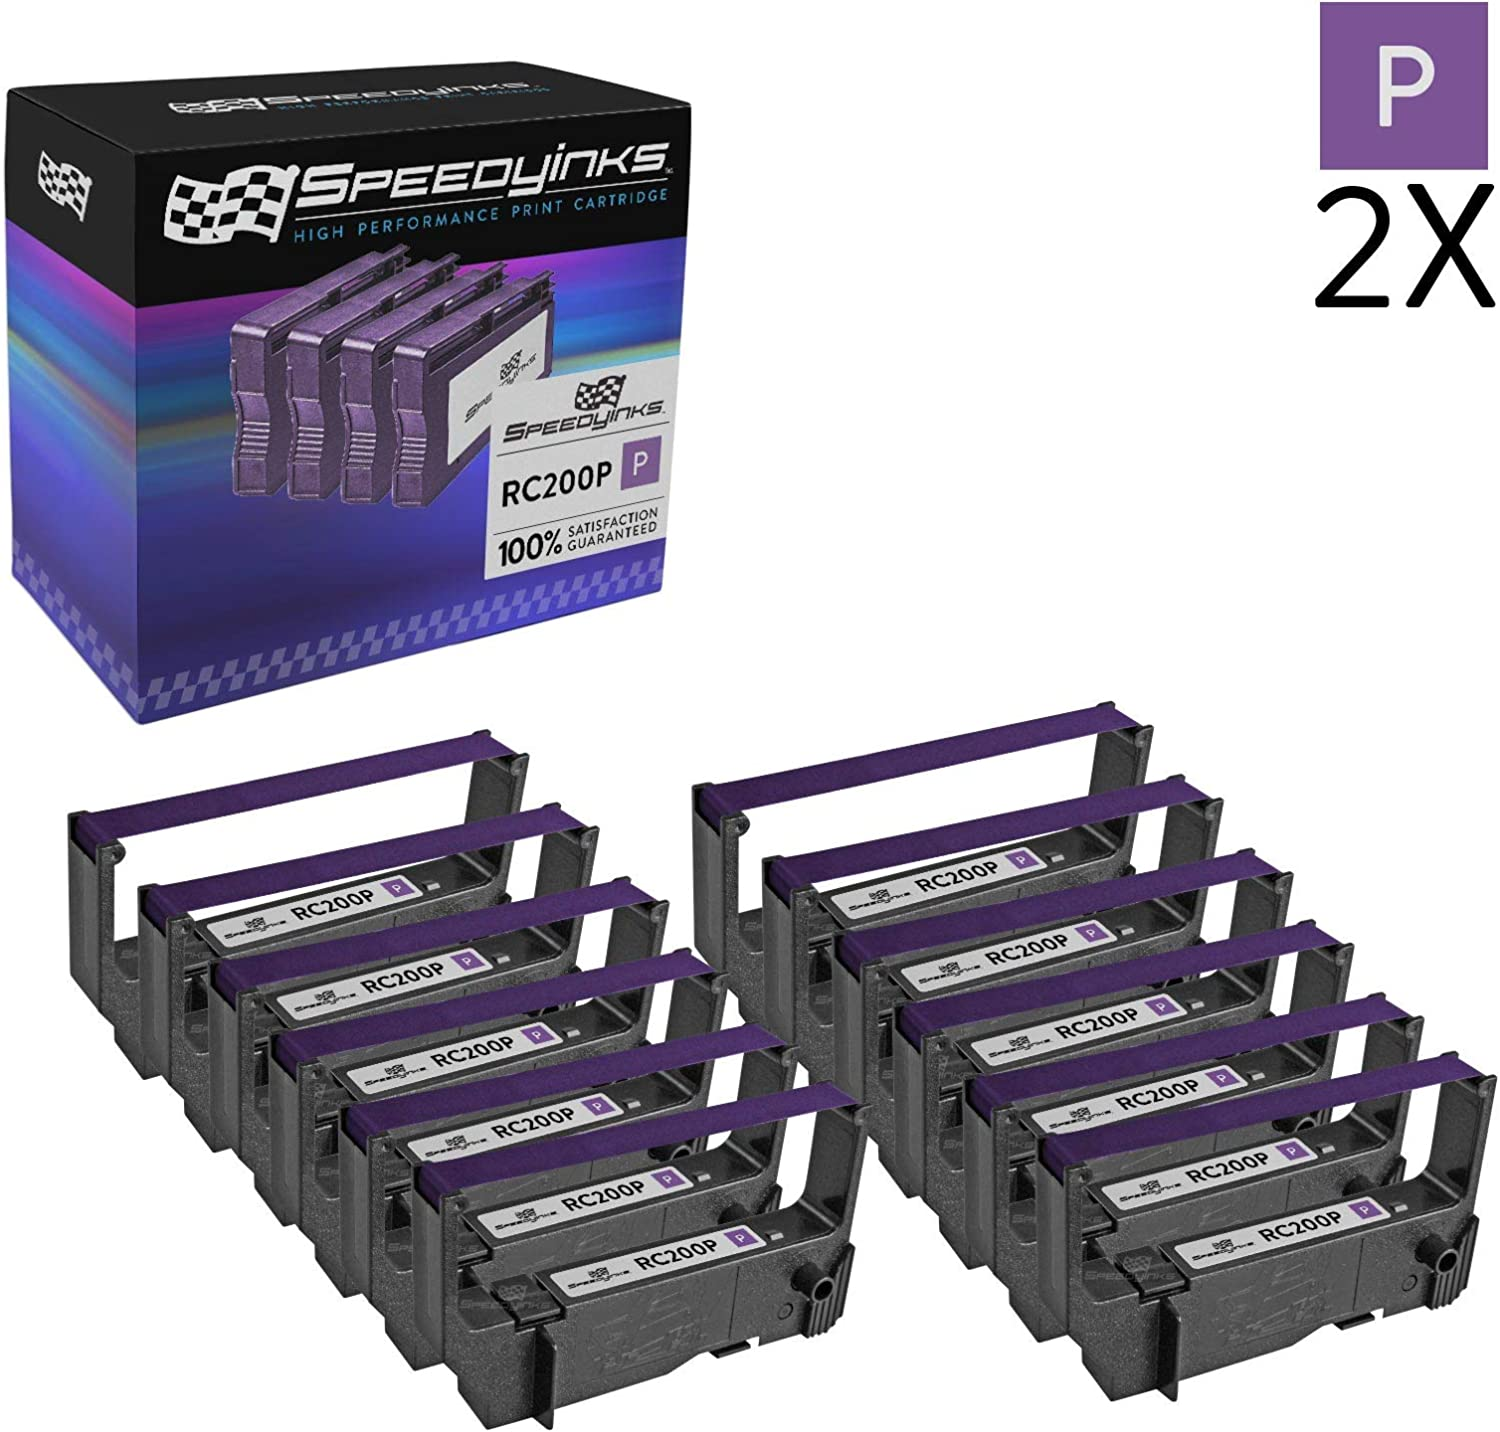 Speedy Inks Compatible POS Ribbon Cartridge Replacement for Star Micronics RC200P Purple, 6-Pack